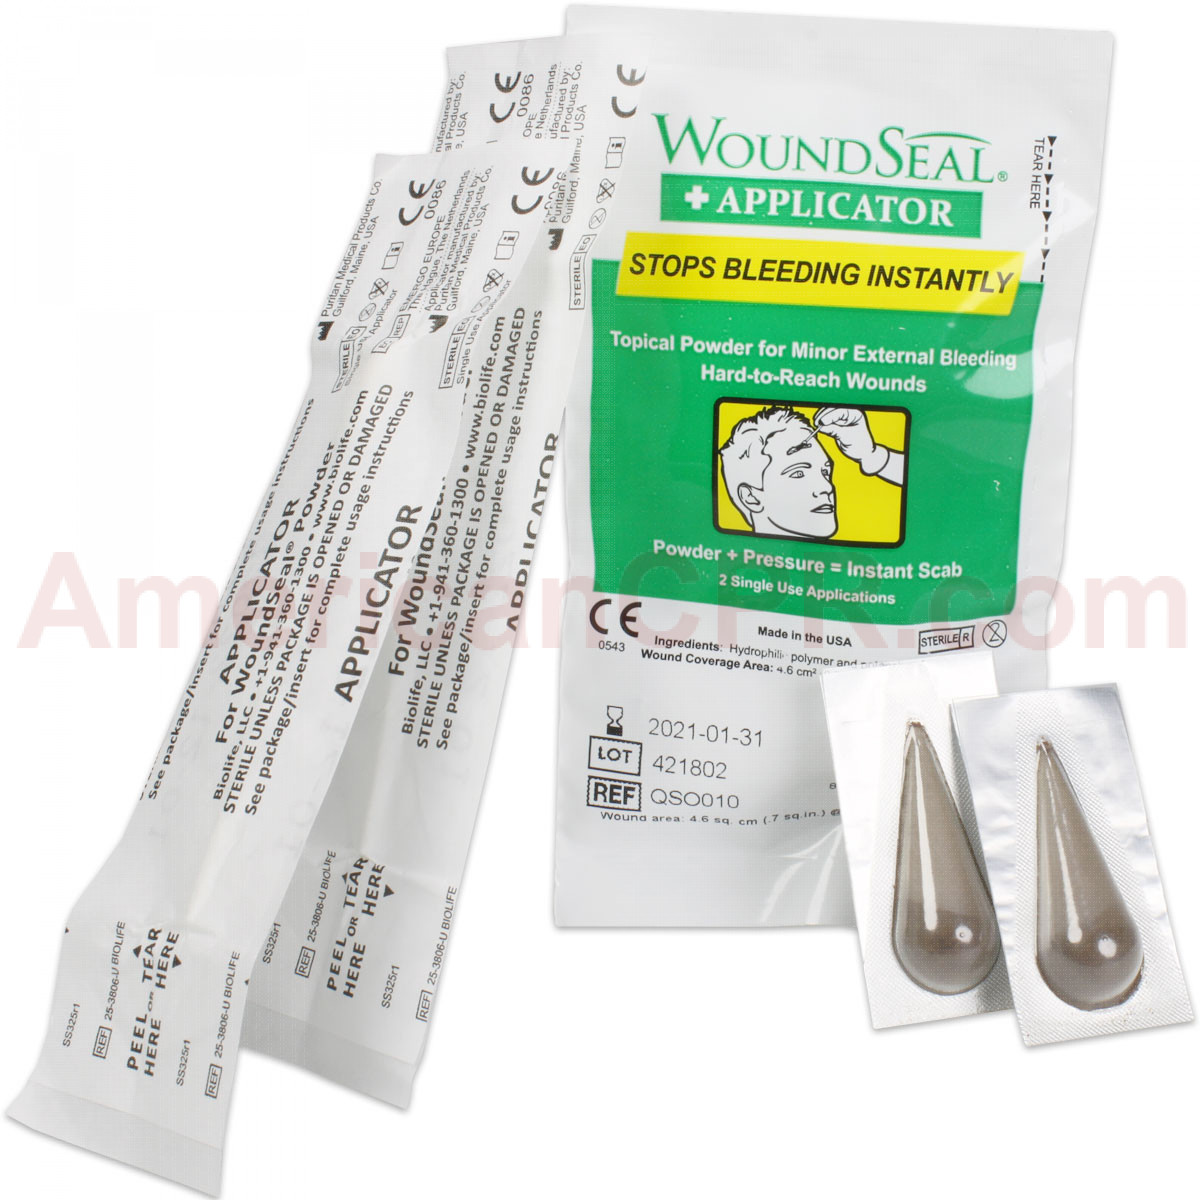 WoundSeal pack includes topical powder for minor external bleeding hard-to-reach wounds